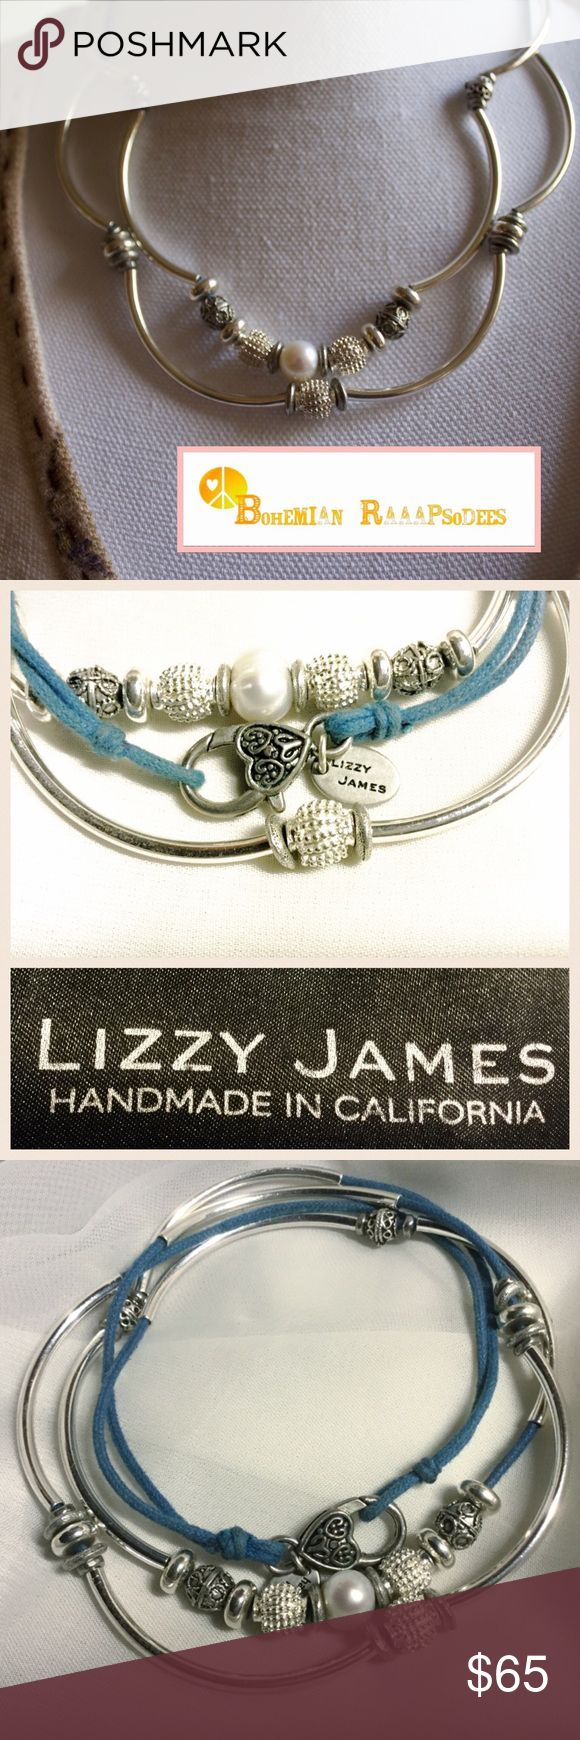 "Lizzy James ""Kristy"" 2 Strand Necklace/Bracelet Romantic and elegant versatile piece from Lizzy James.  Features 2 cotton blue strands, beaded with silverplate crescents and beads with a freshwater pearl as its focal point. Handmade in the USA. Comes with Lizzy James jewelry bag. Length of this convertible piece is 19"". Lizzy James Jewelry"